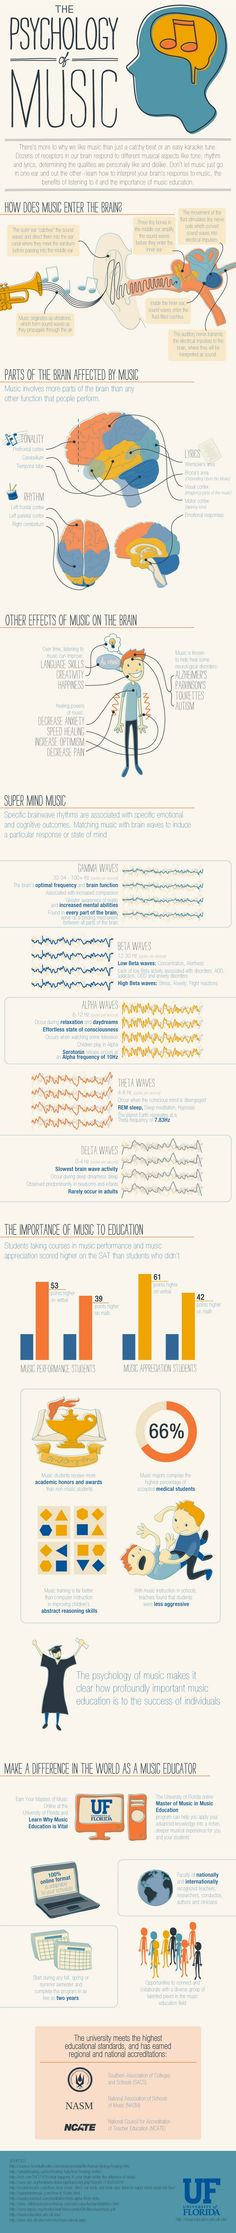 Psychology of Music #infographic